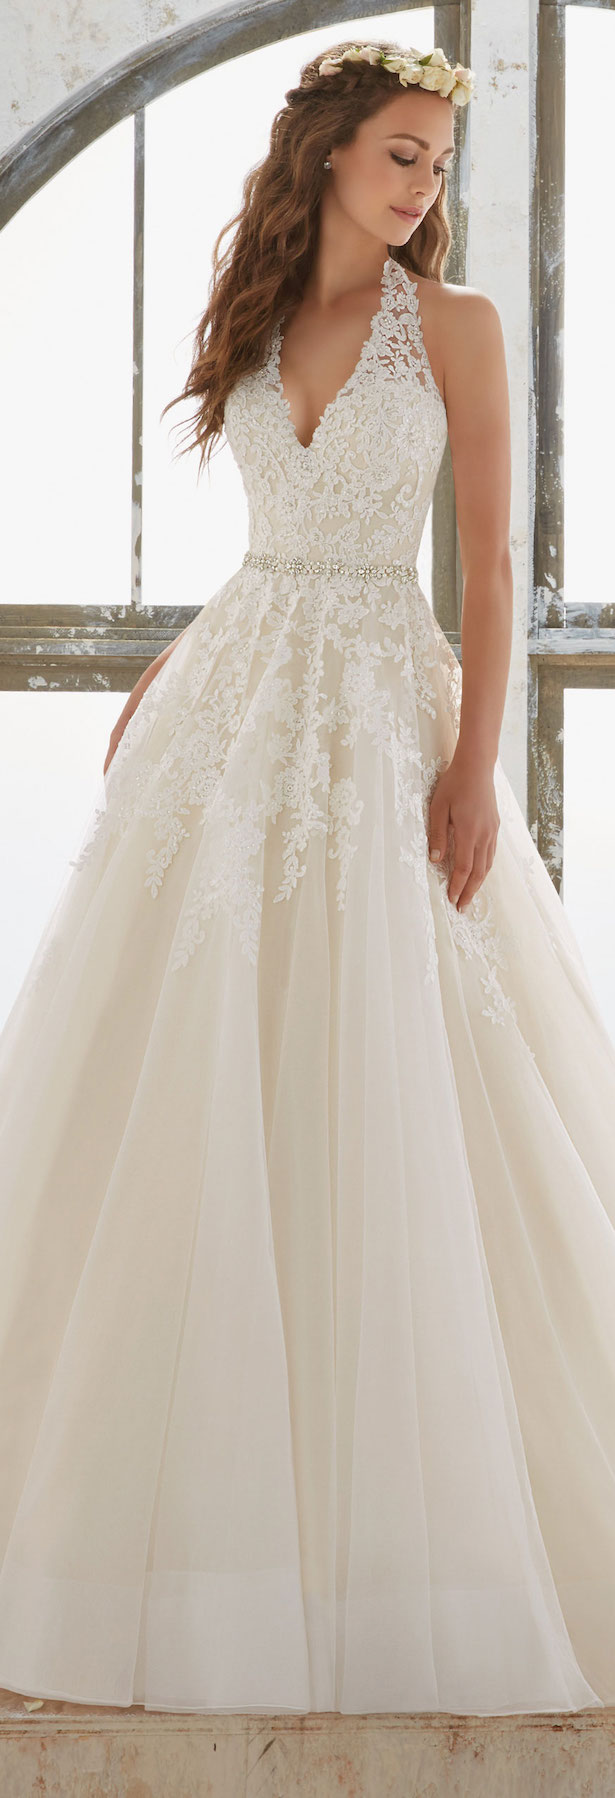 best wedding dresses mori by madeline gardner wedding dress collection 1683